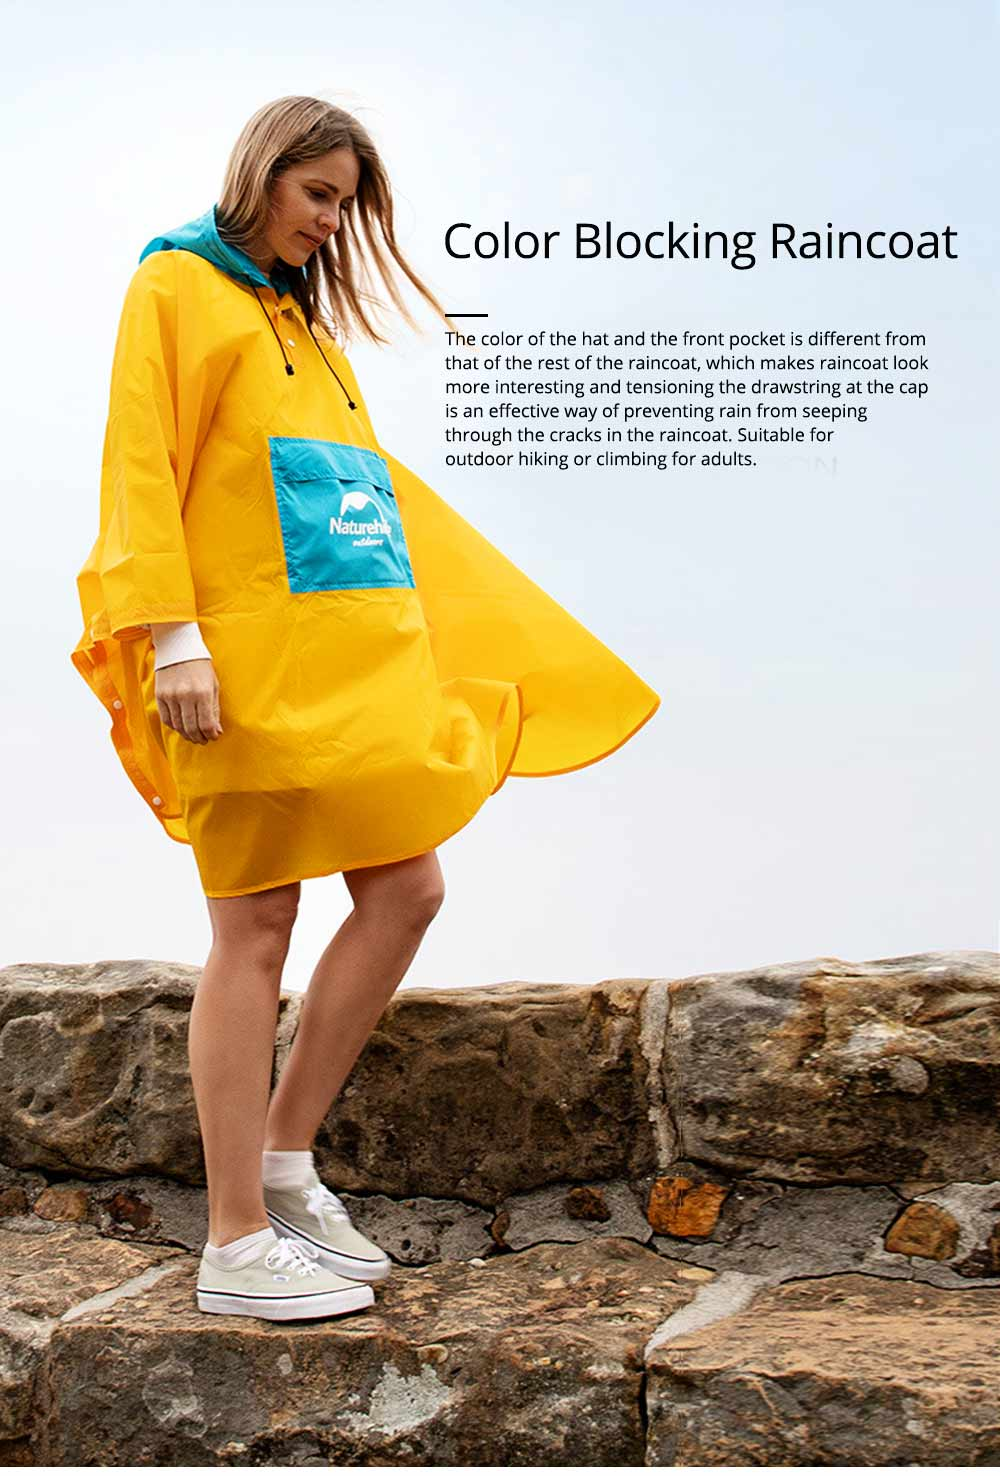 Color Stitching Raincoat for Adults, Portable Hiking Poncho with Hood & Sleeves, Outdoors Ultralight Raincoat 0